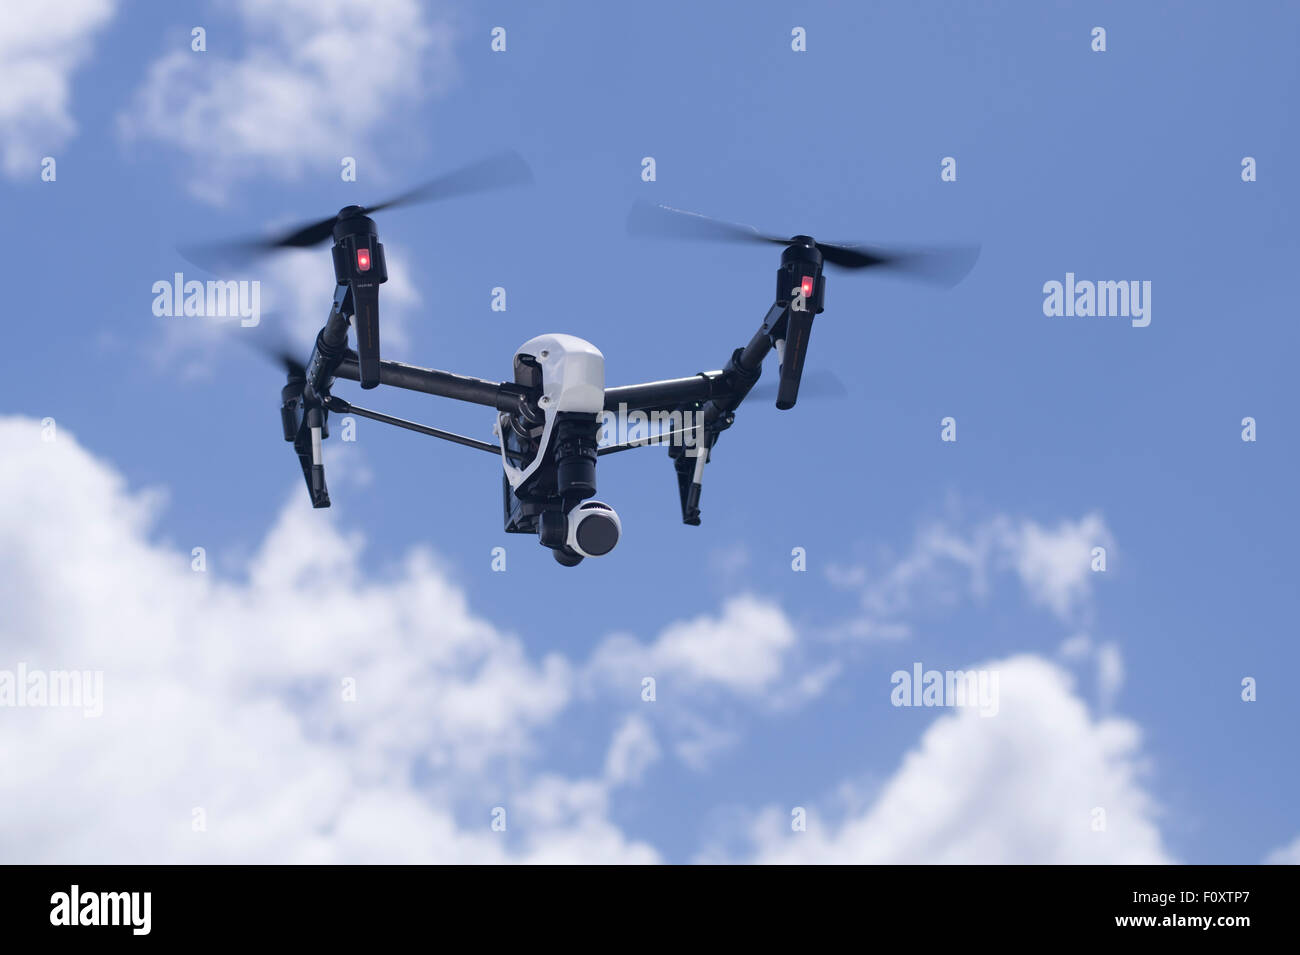 DJI Inspire Drone quadcopter a  commercial and recreational unmanned aerial vehicle for aerial photography and video - Stock Image